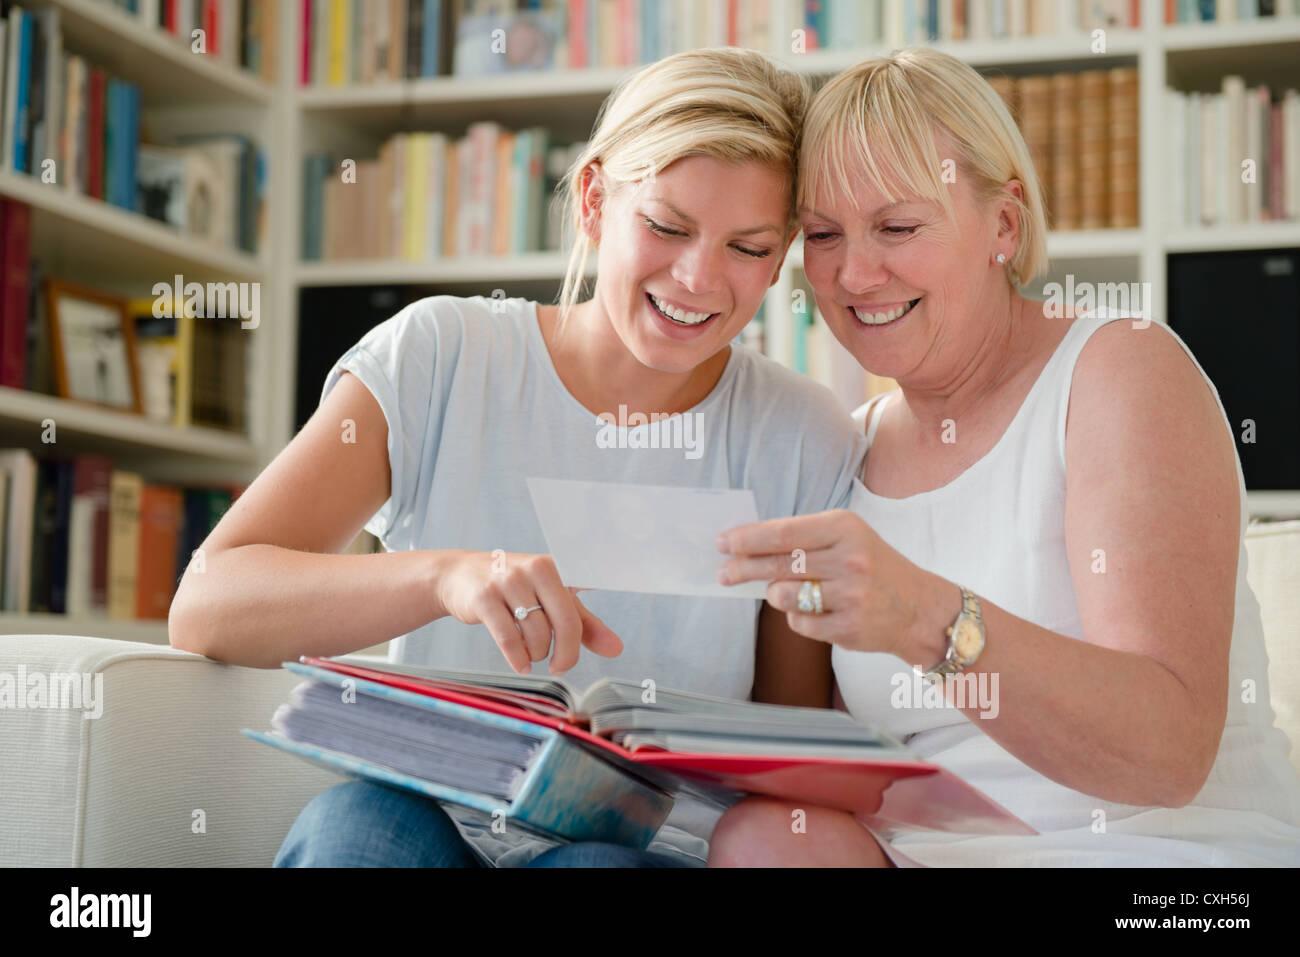 Family happiness and memories, happy mom and daughter looking at pictures in photo album - Stock Image